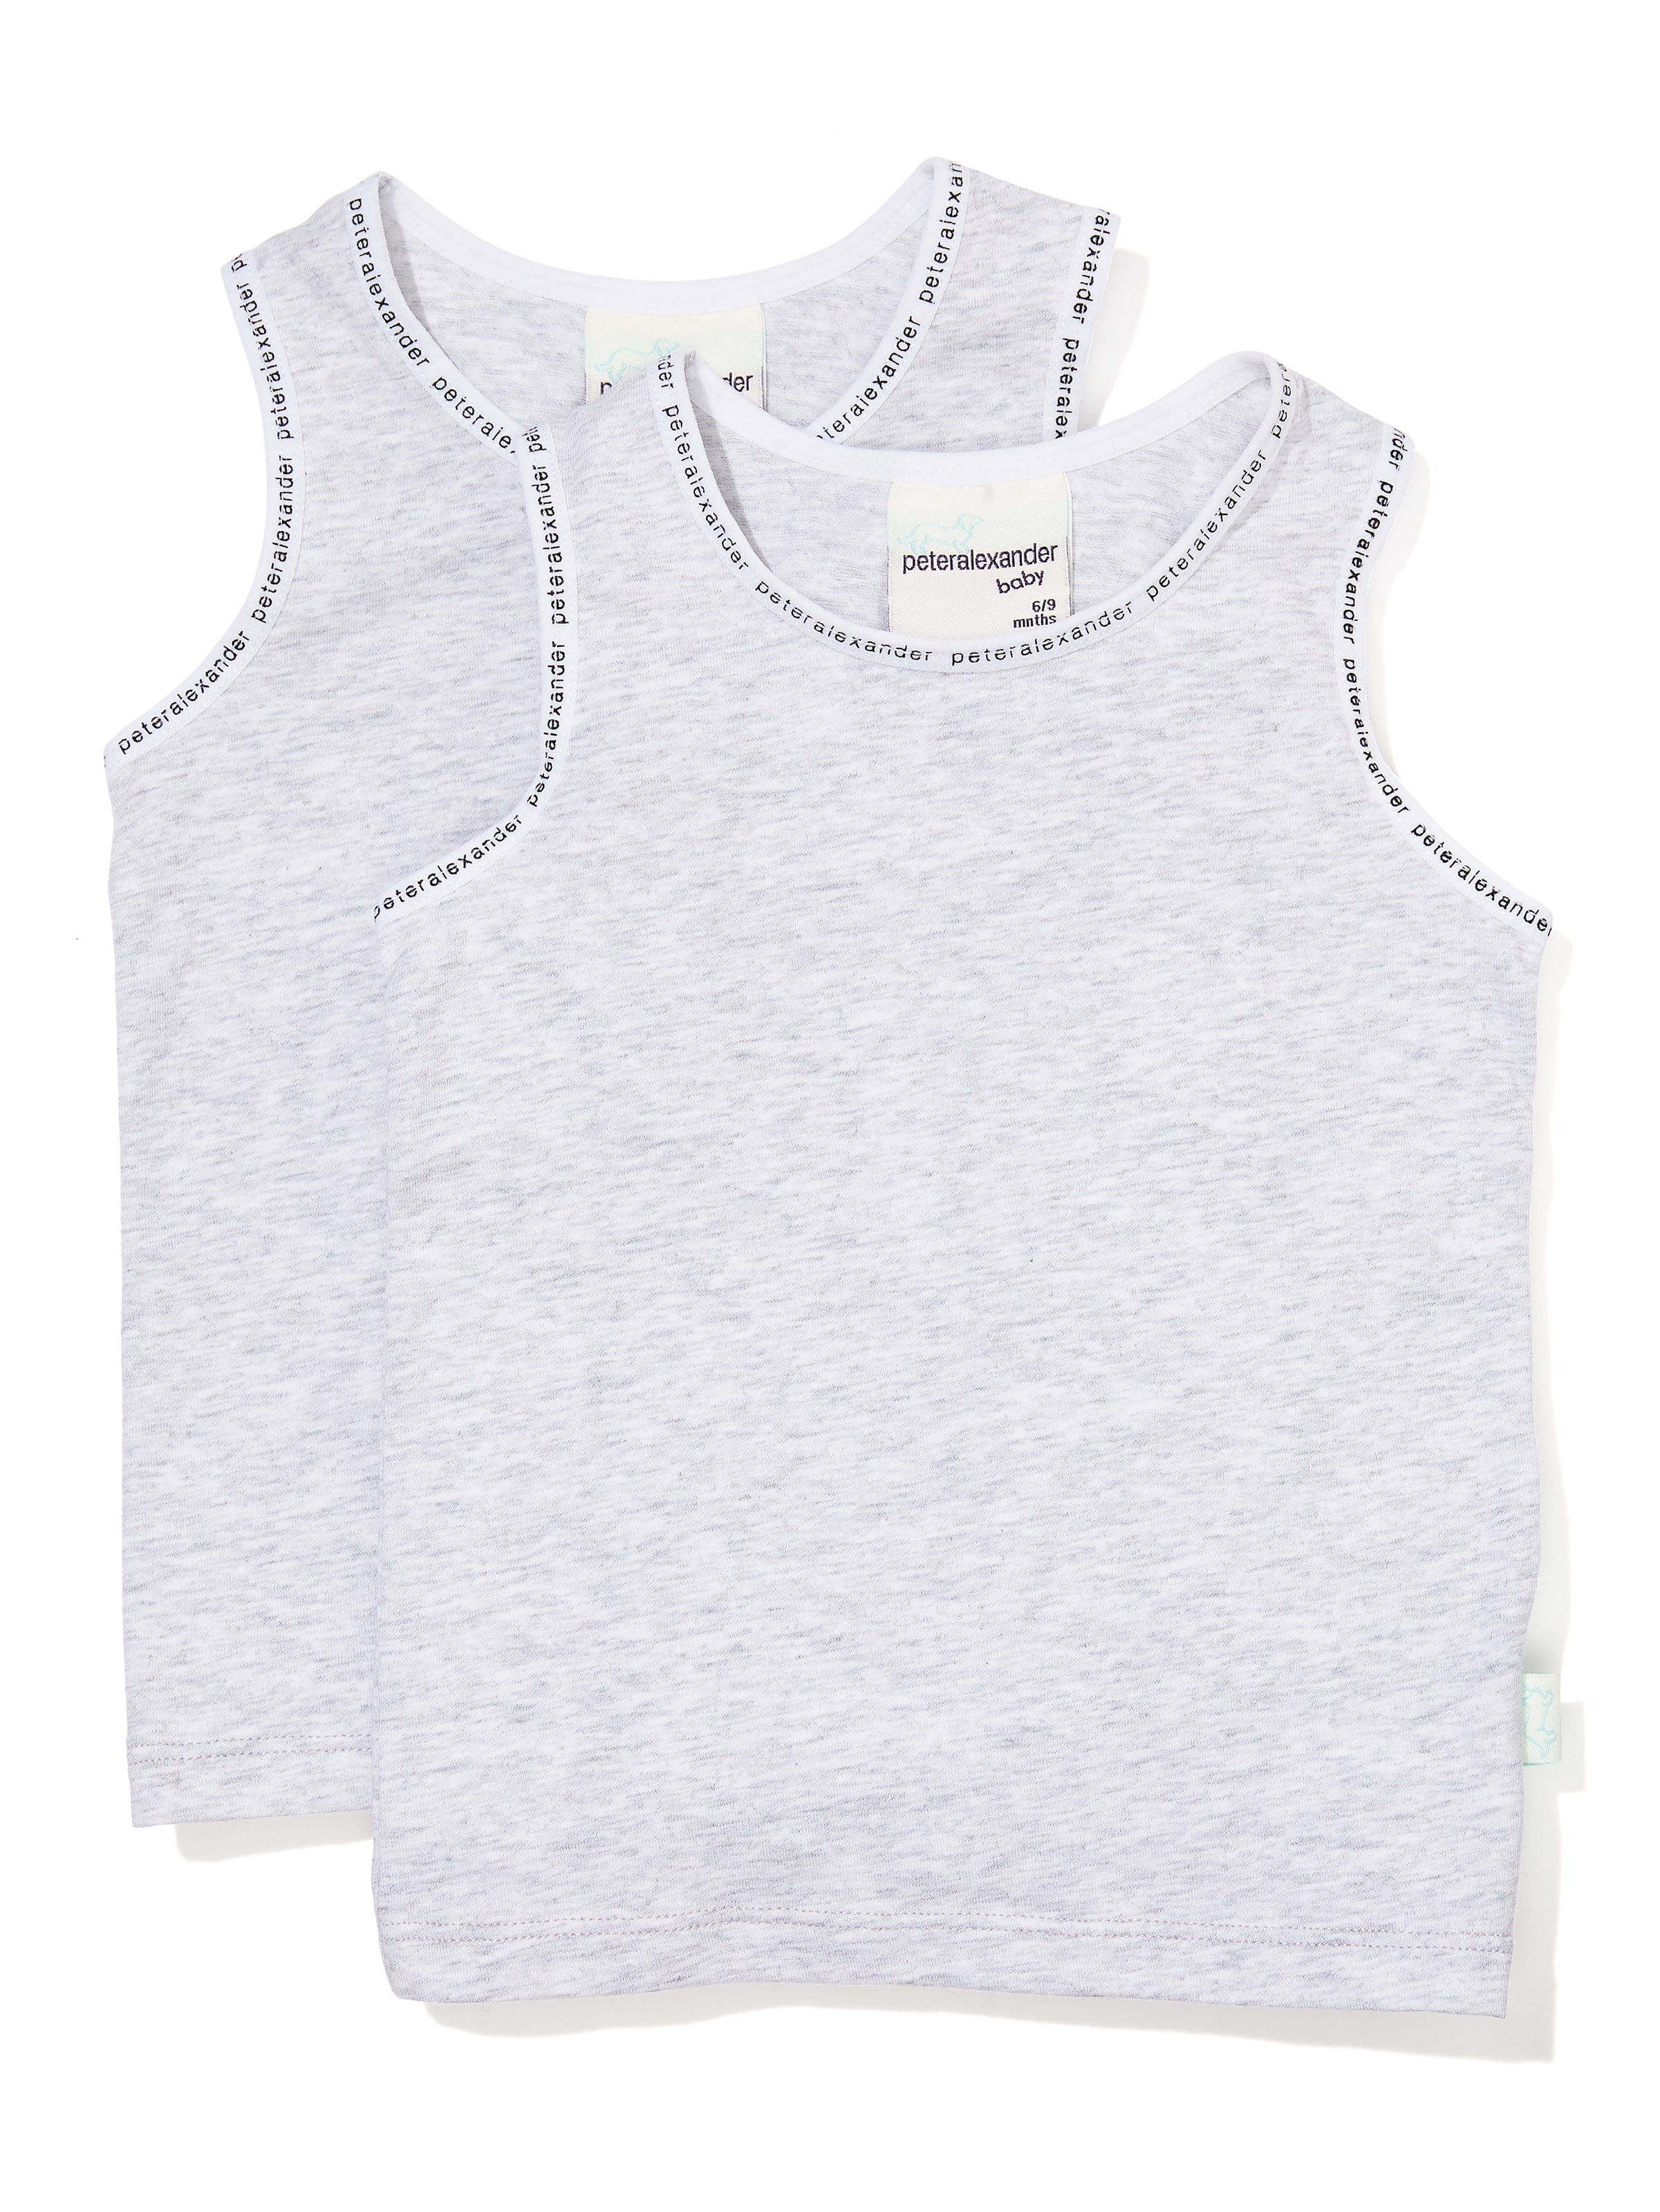 Baby Marle Singlet 2 Pack Peter Alexander Online Pd Image For From